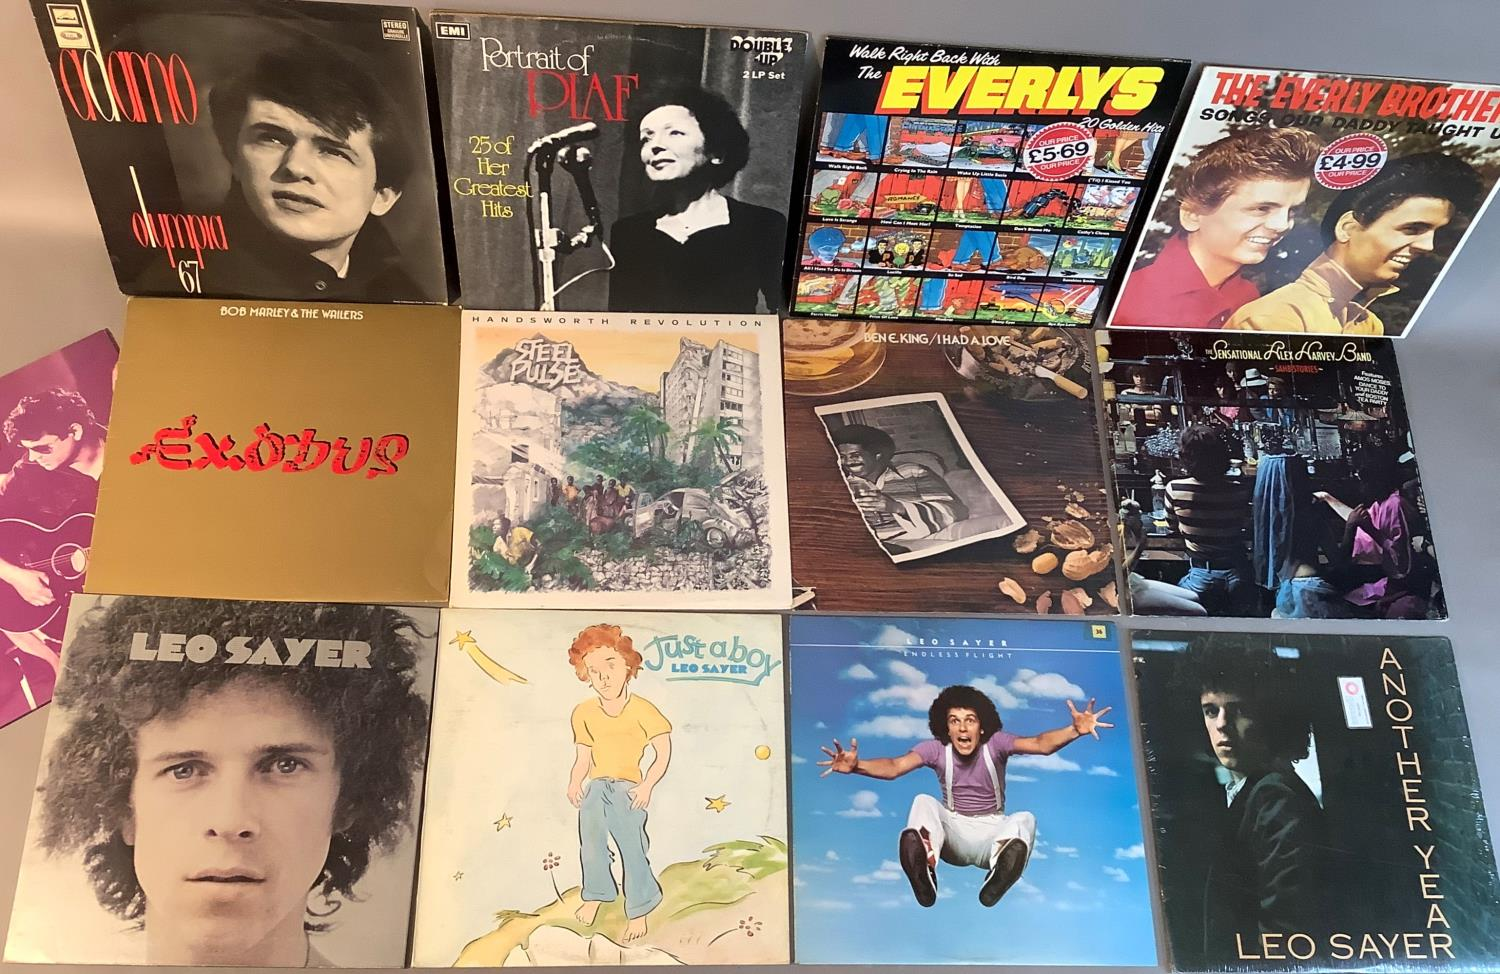 A quantity of LP's to include: Adamo - Olympia '67, Edith Piaf - Portrait of Piaf, Everly Brothers - - Image 2 of 4